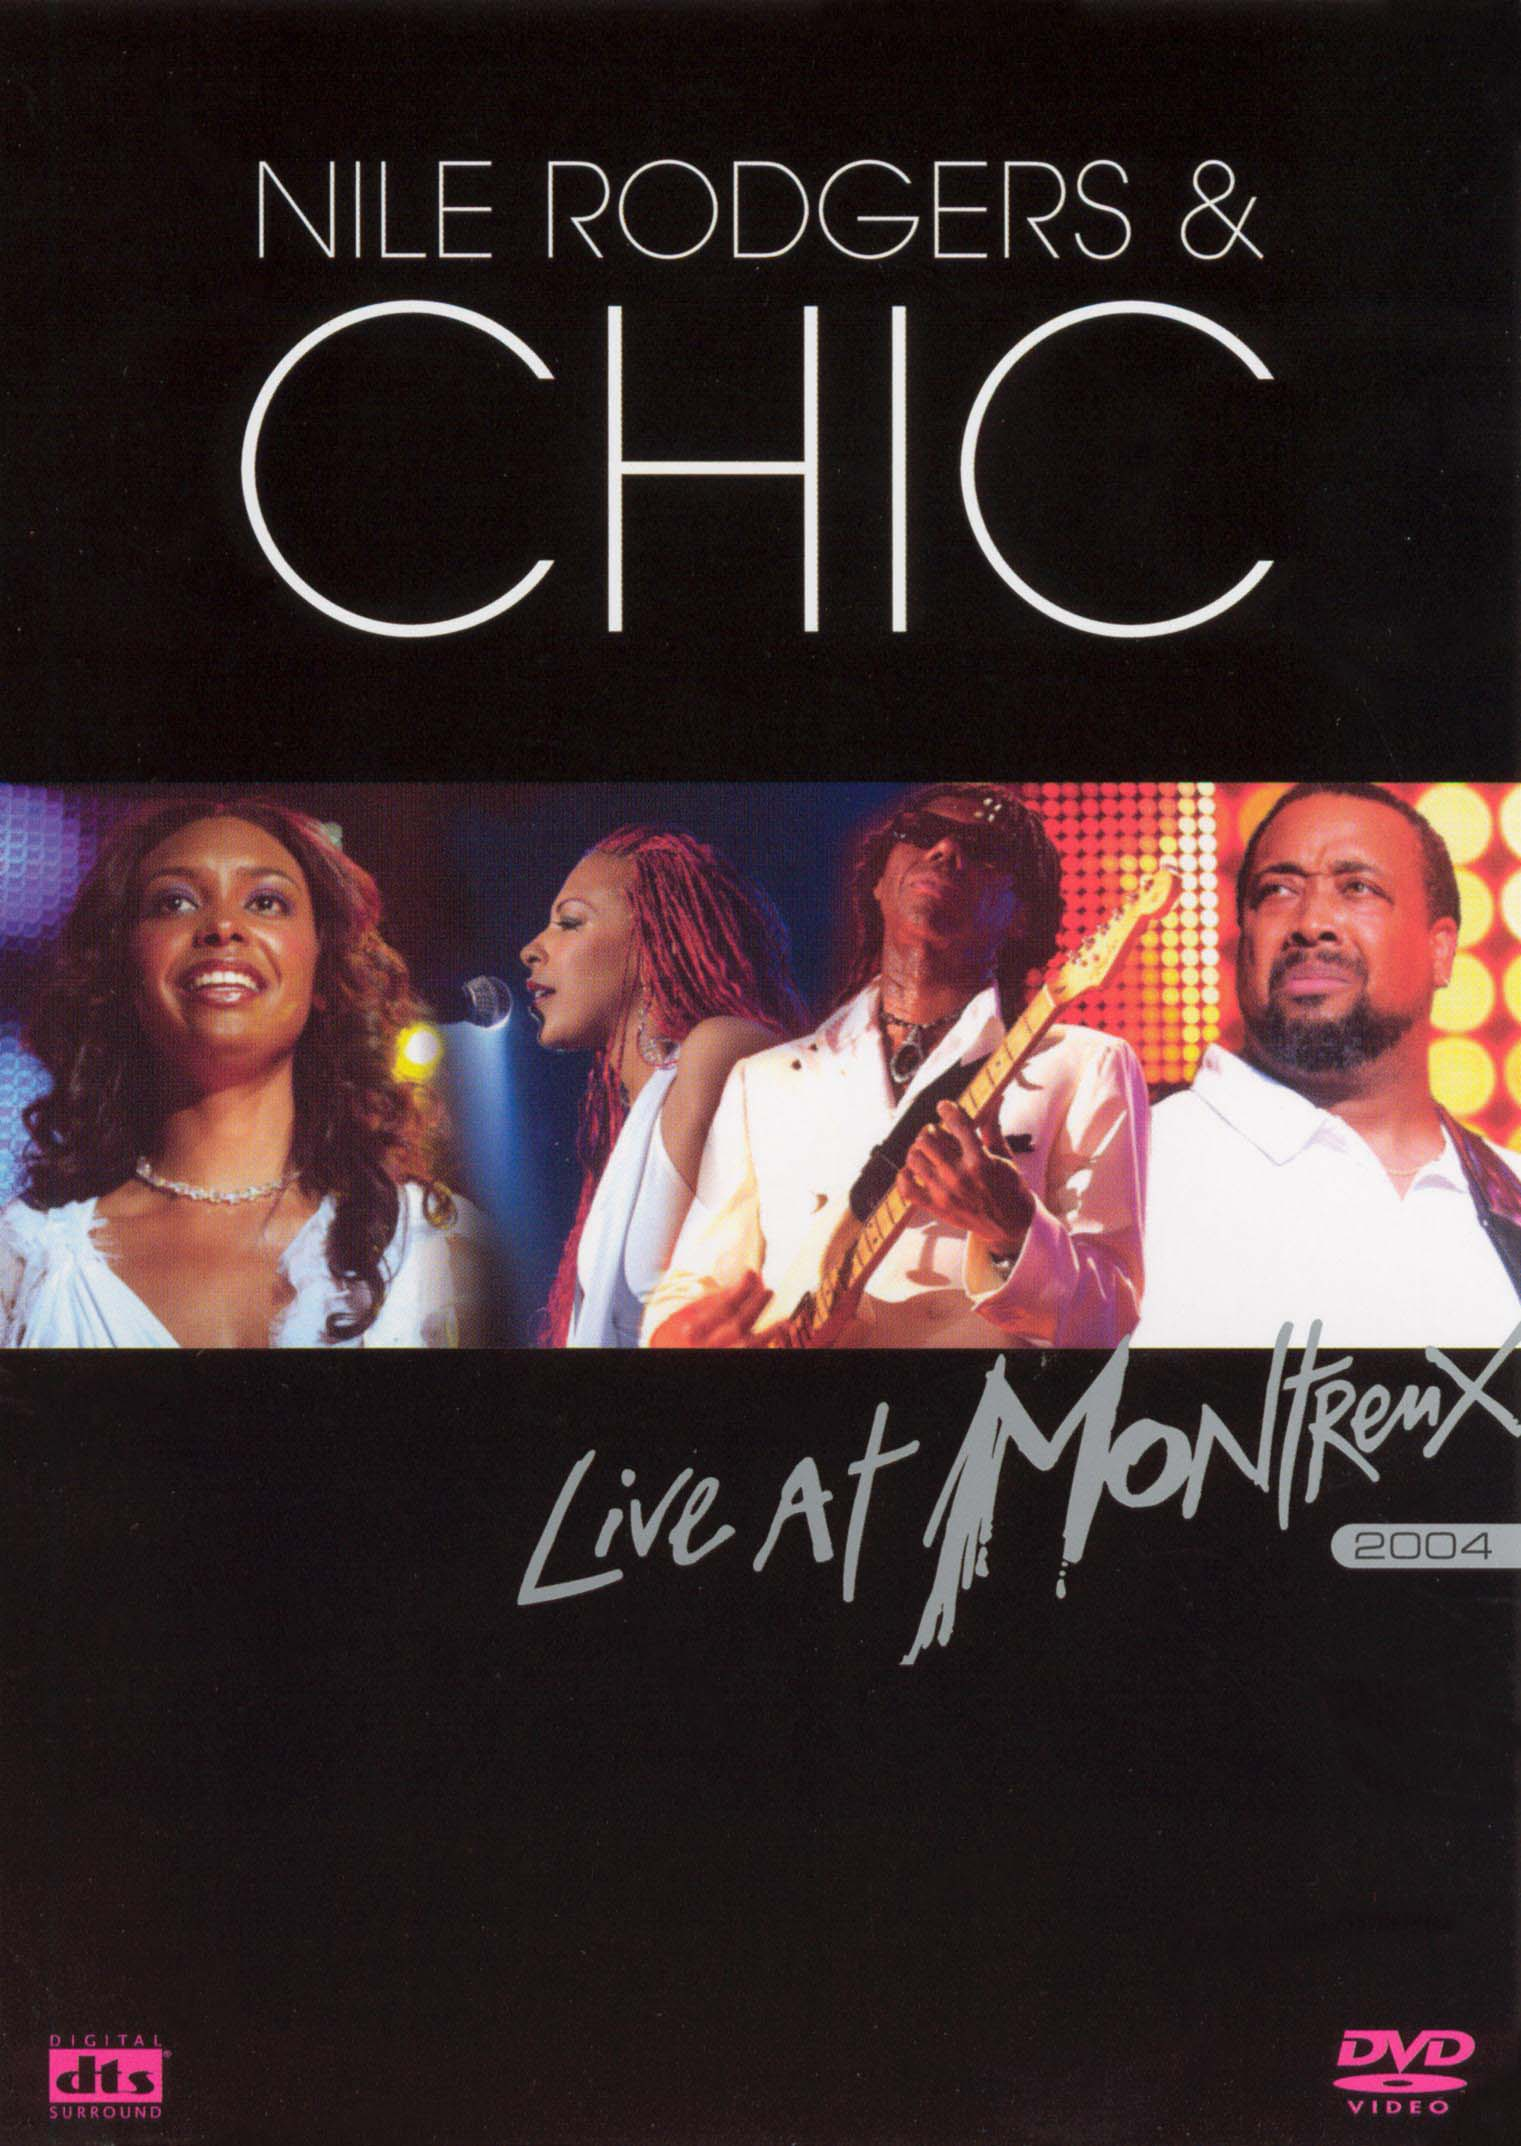 Chic With Nile Rodgers: Live at Montreux, 2004